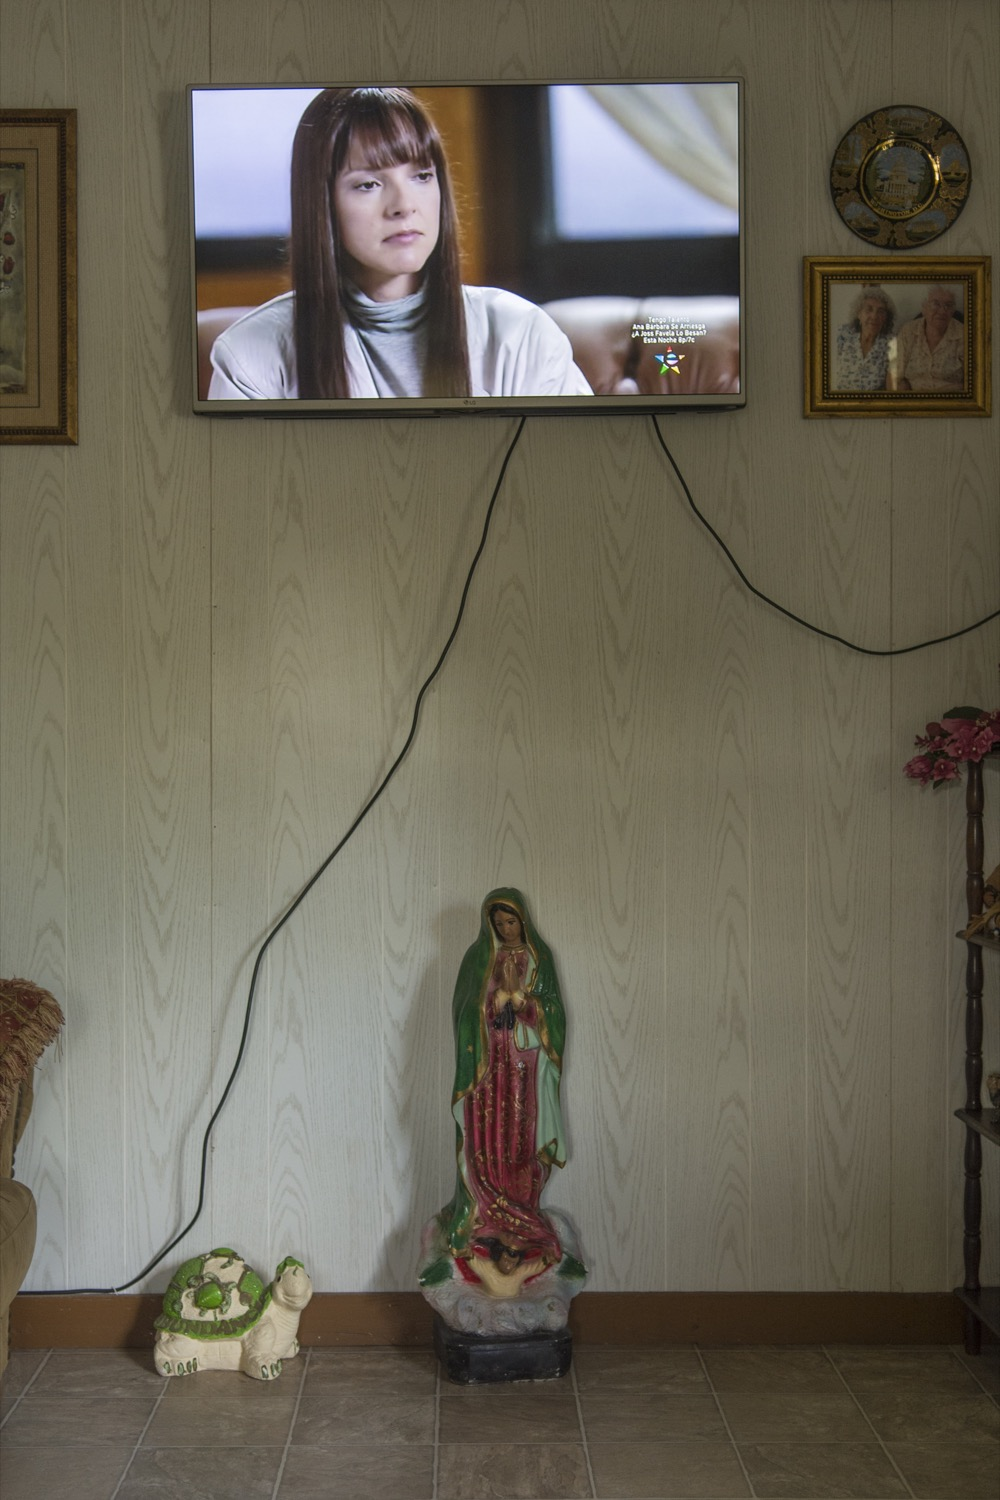 Telenovelas play in the TV room of the Martinez home. Maria lives here with her mother, Juliana, and her father, Hermenegildo.©2018/Jerry Redfern